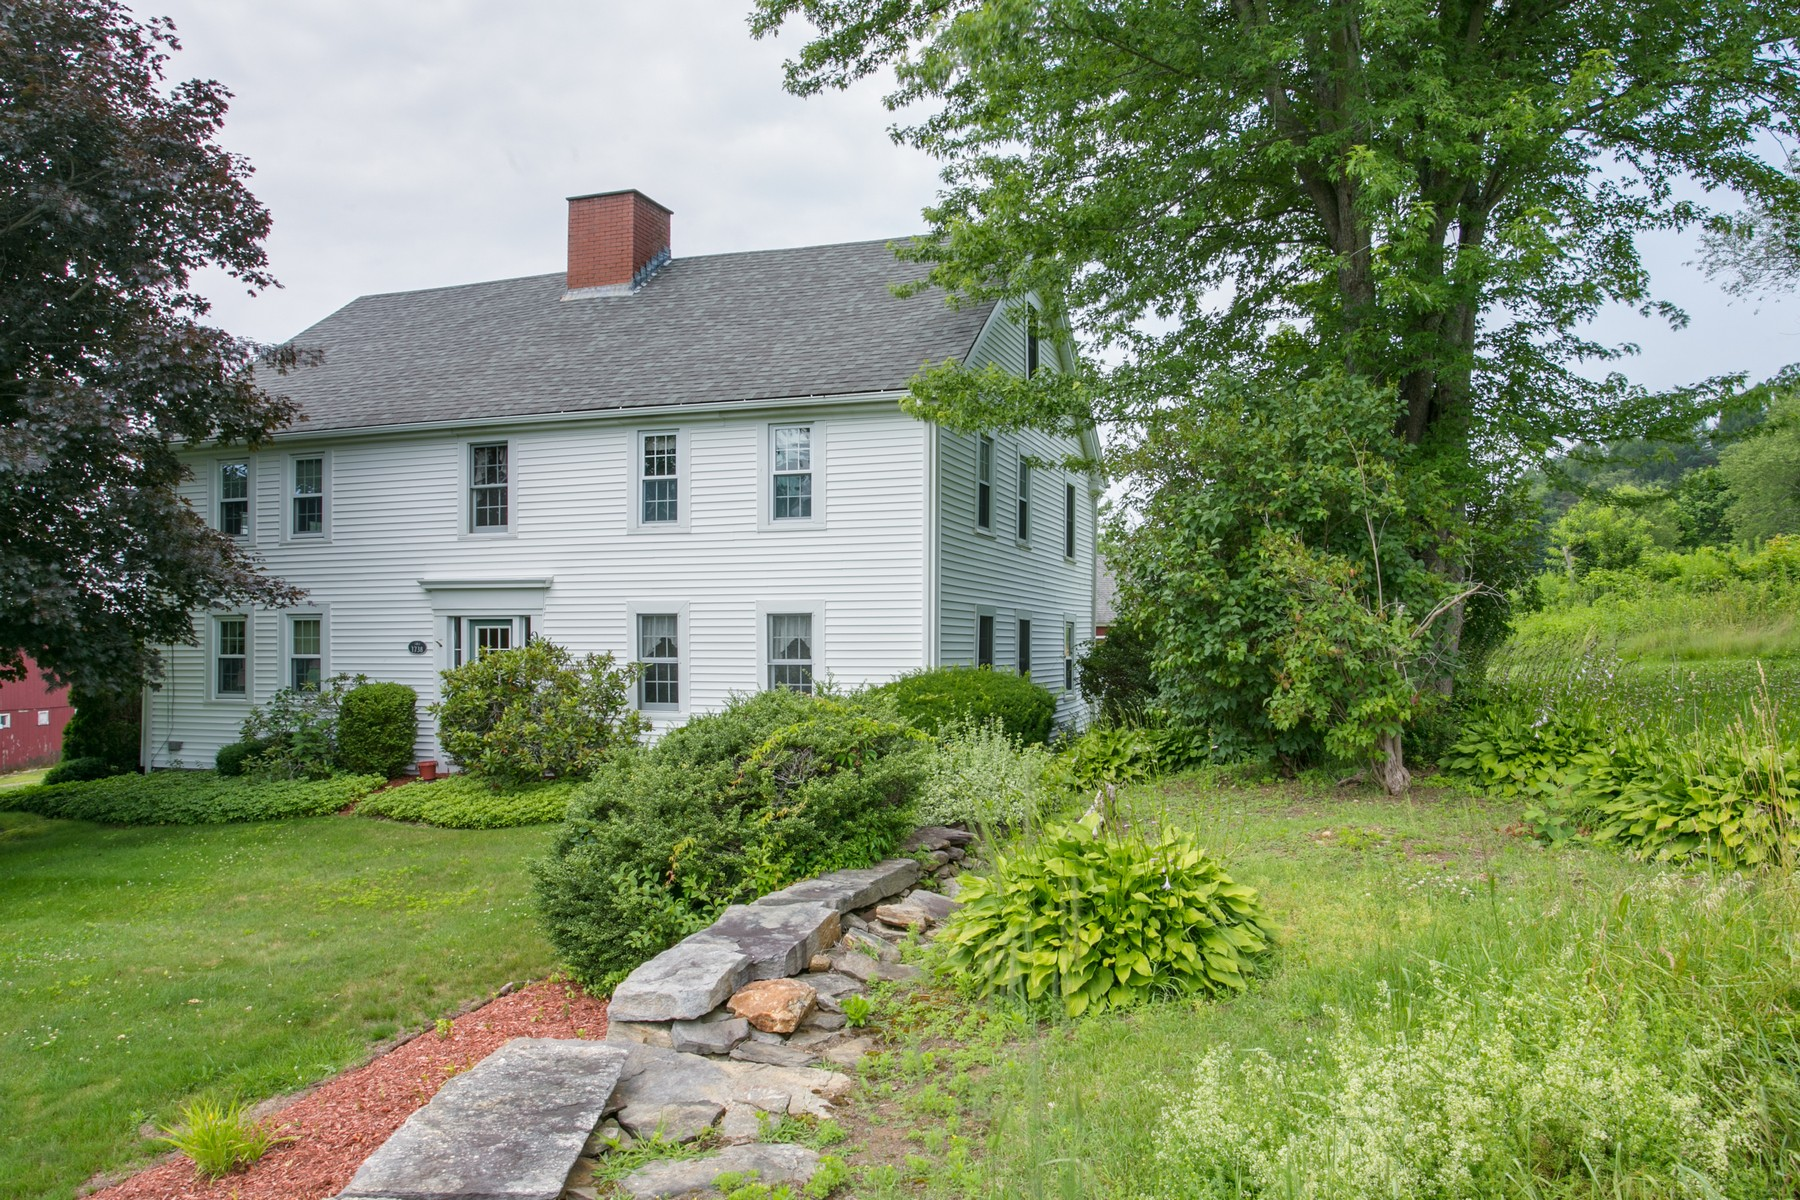 Casa Unifamiliar por un Venta en Charming Antique Colonial 10 Bigelow Road North Brookfield, Massachusetts 01535 Estados Unidos